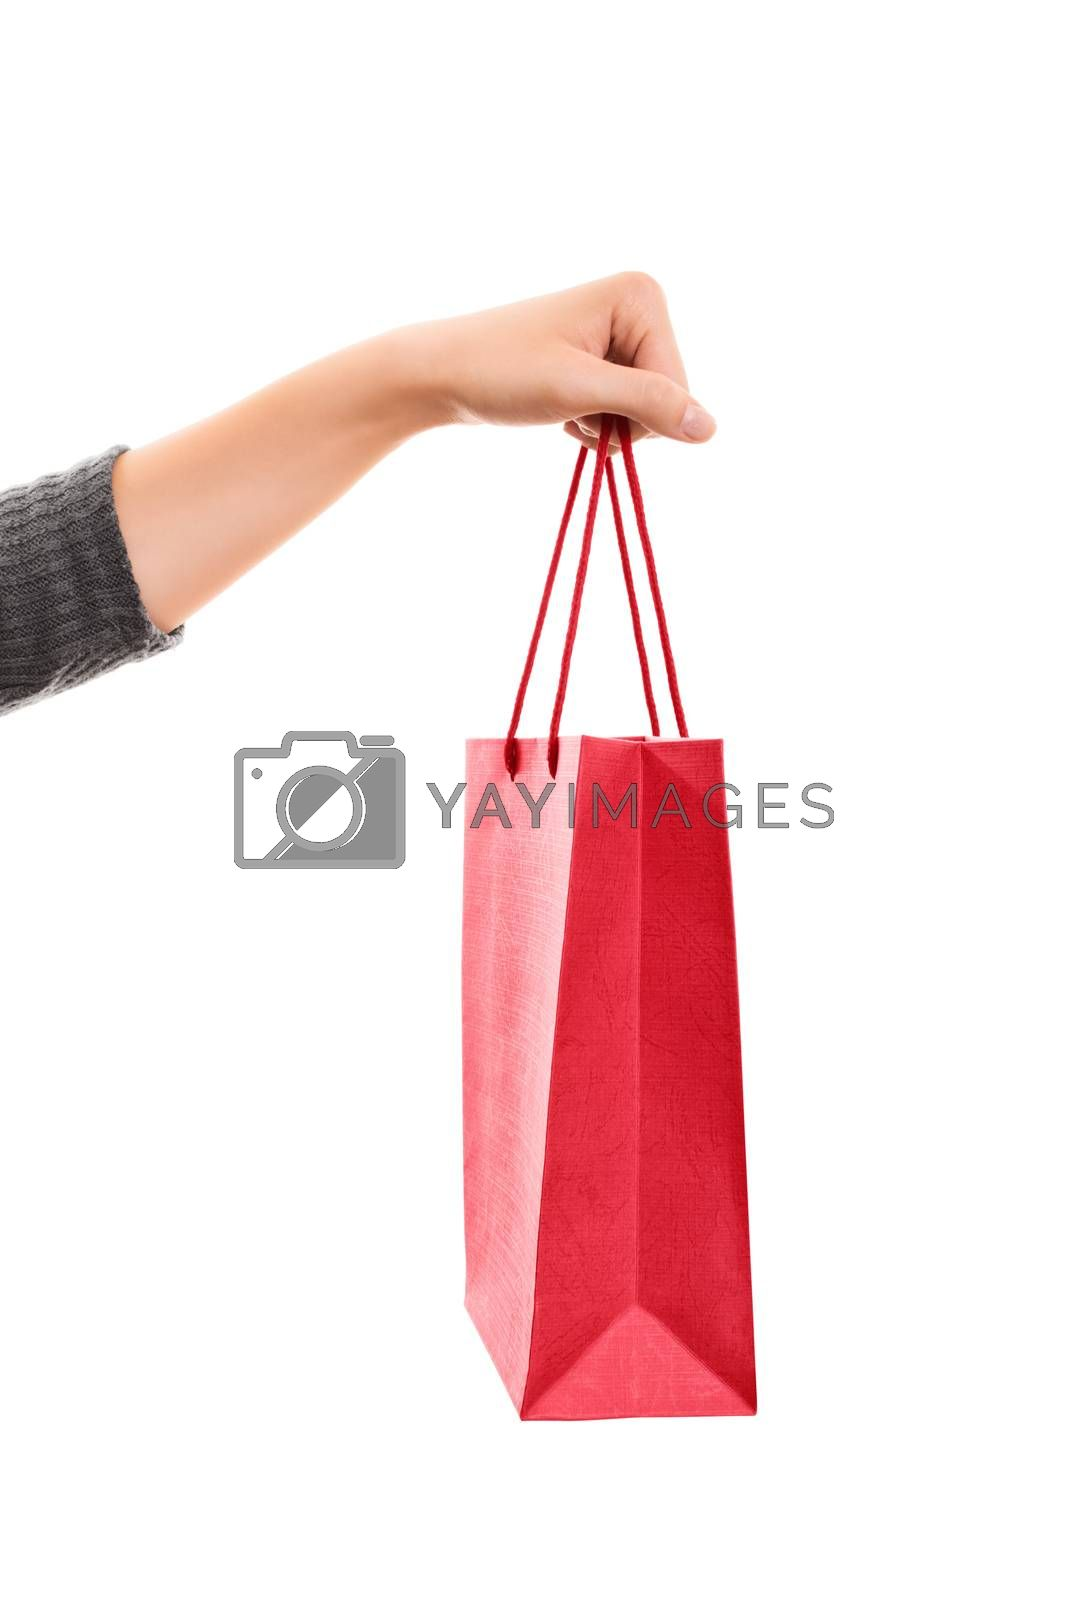 A close up shot of a female hand holding a shopping bag, isolated on white background.